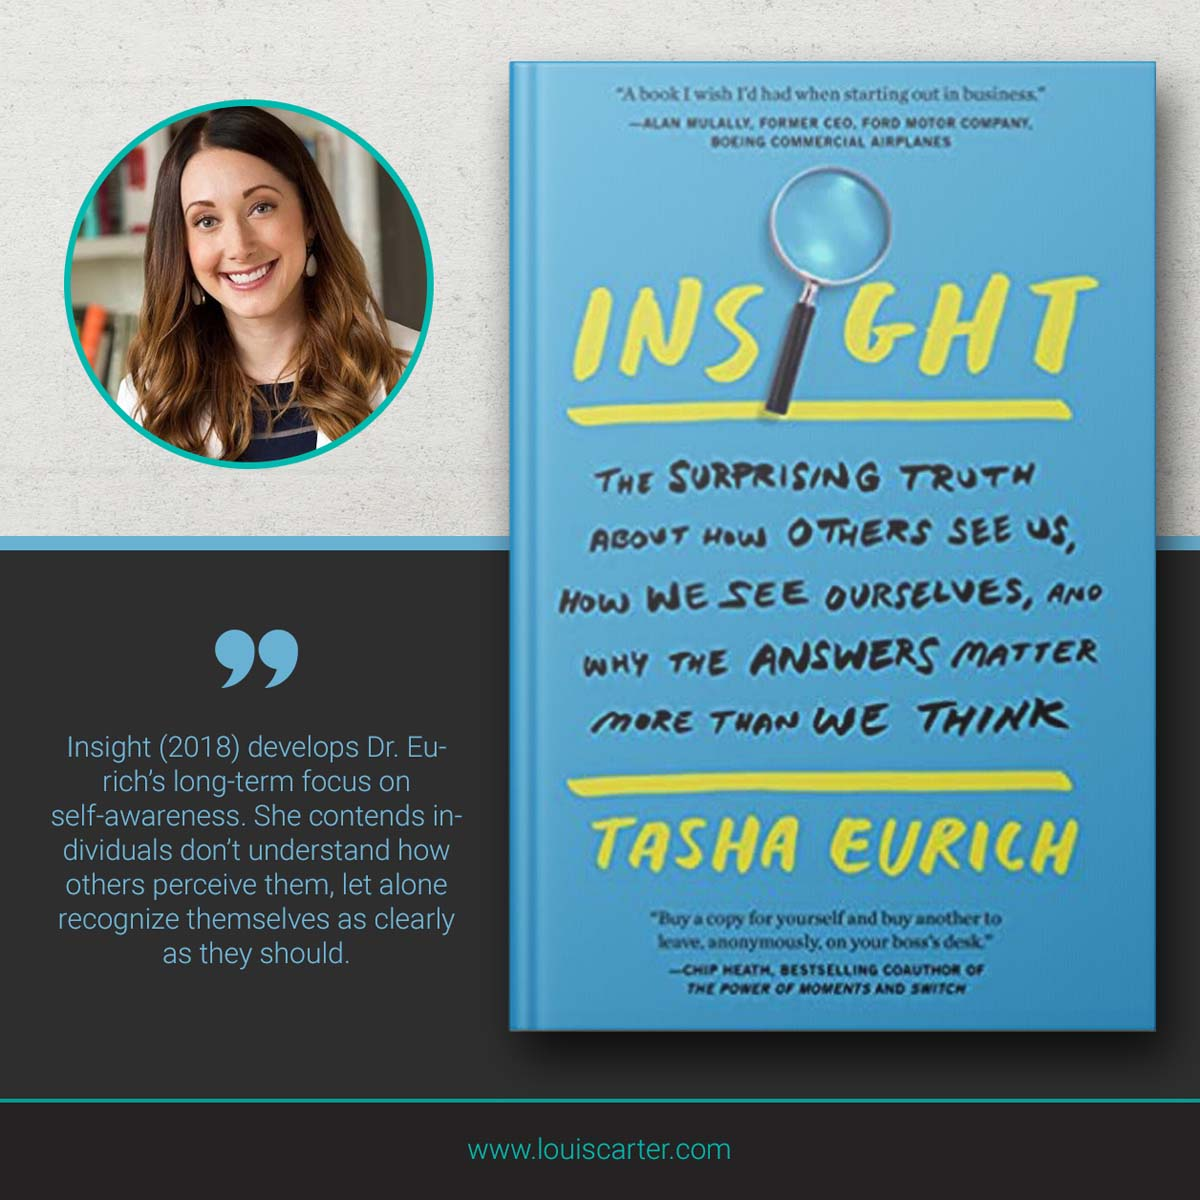 Image of Insight Leadership book by Tasha Eurich.